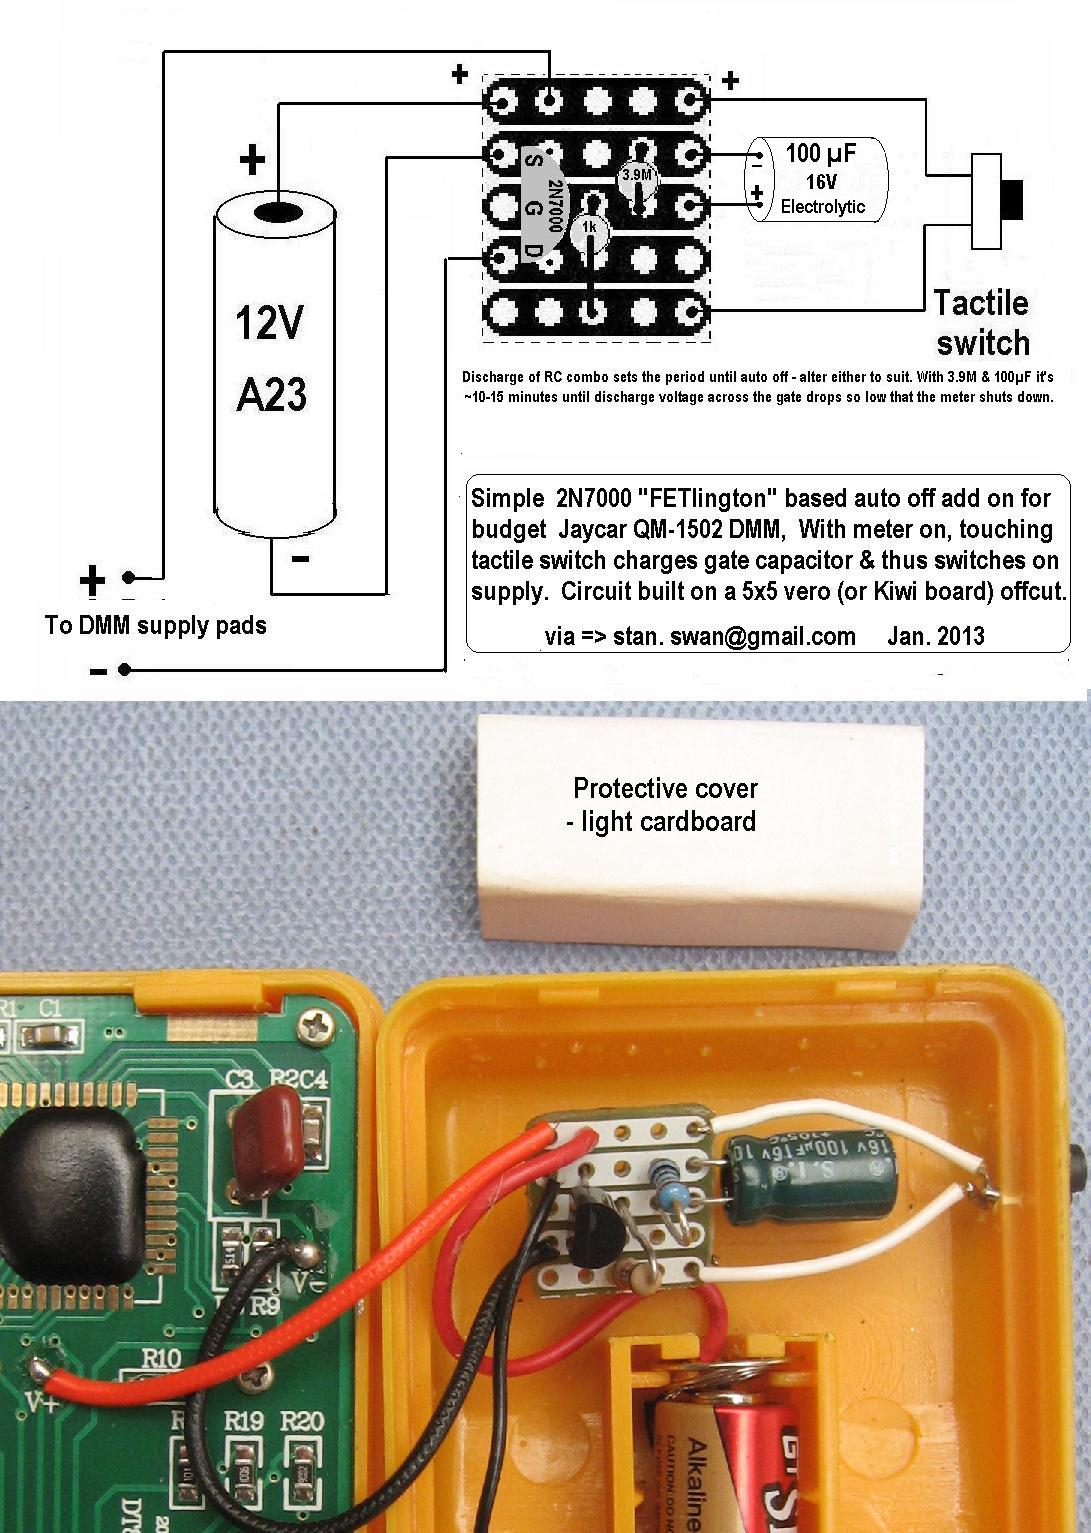 Picture of Parts Layout